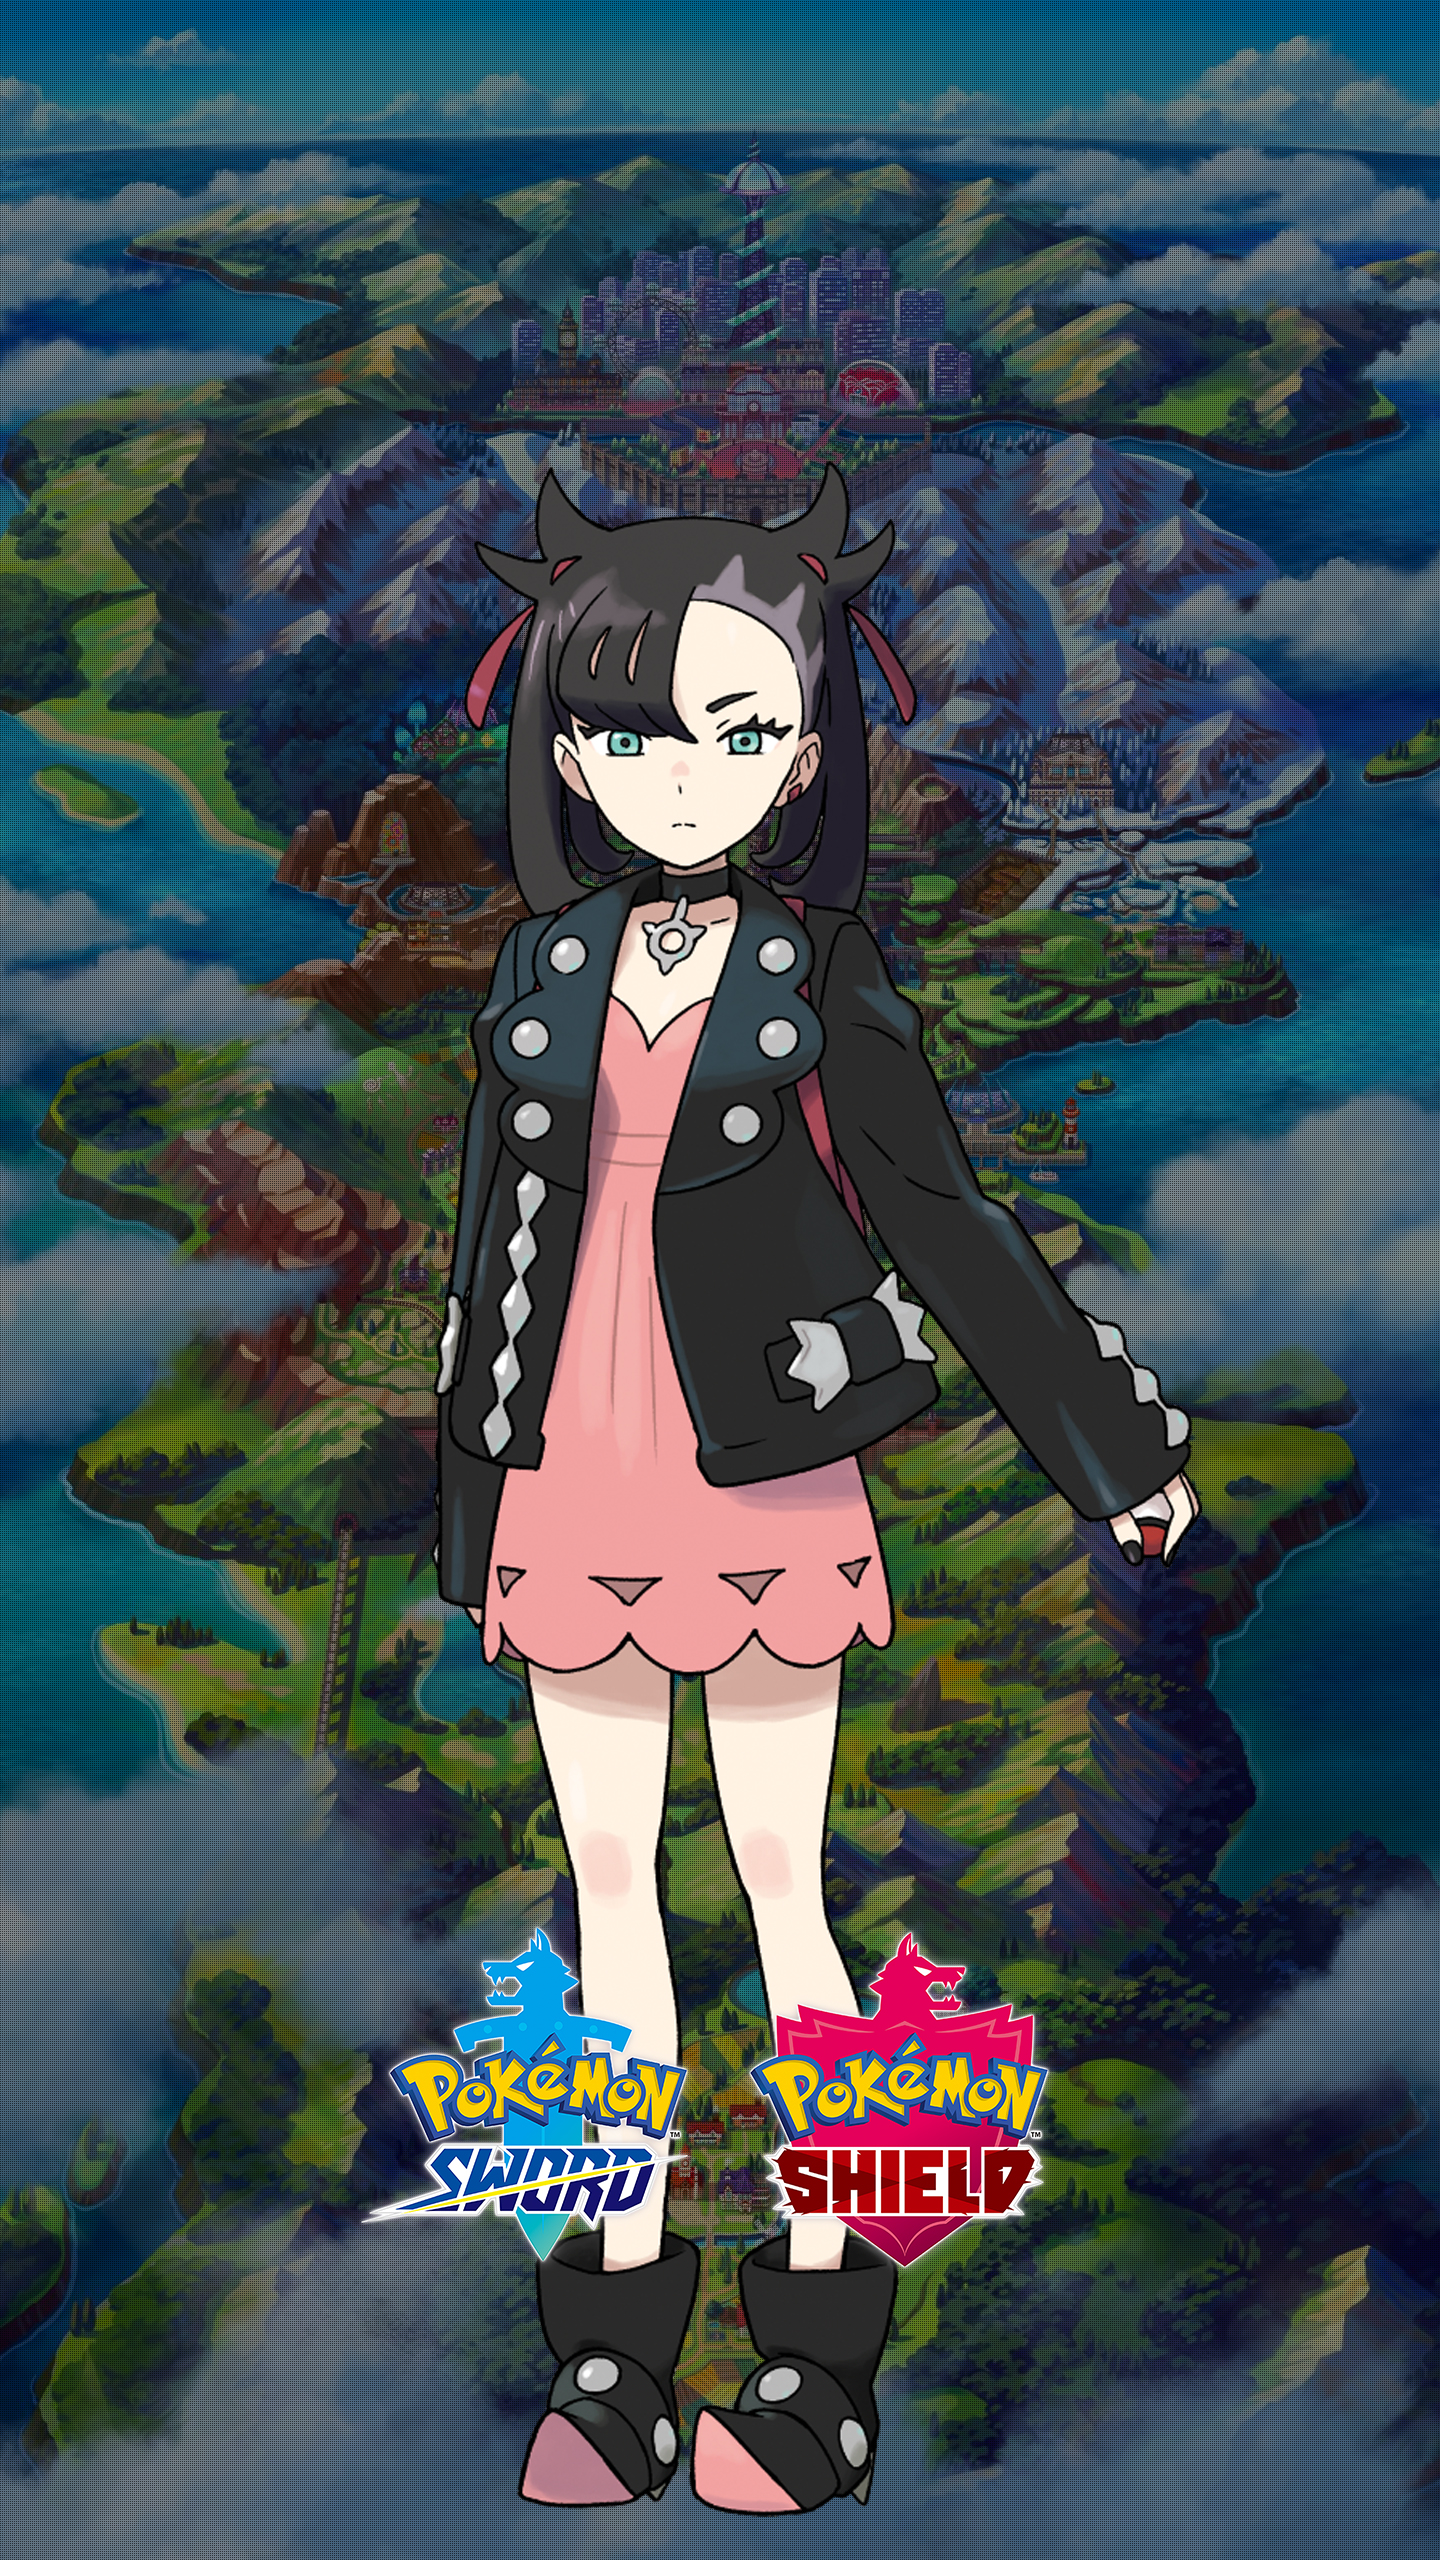 Custom Iphone X Wallpaper Pokemon Sword And Shield Marnie Wallpapers Cat With Monocle